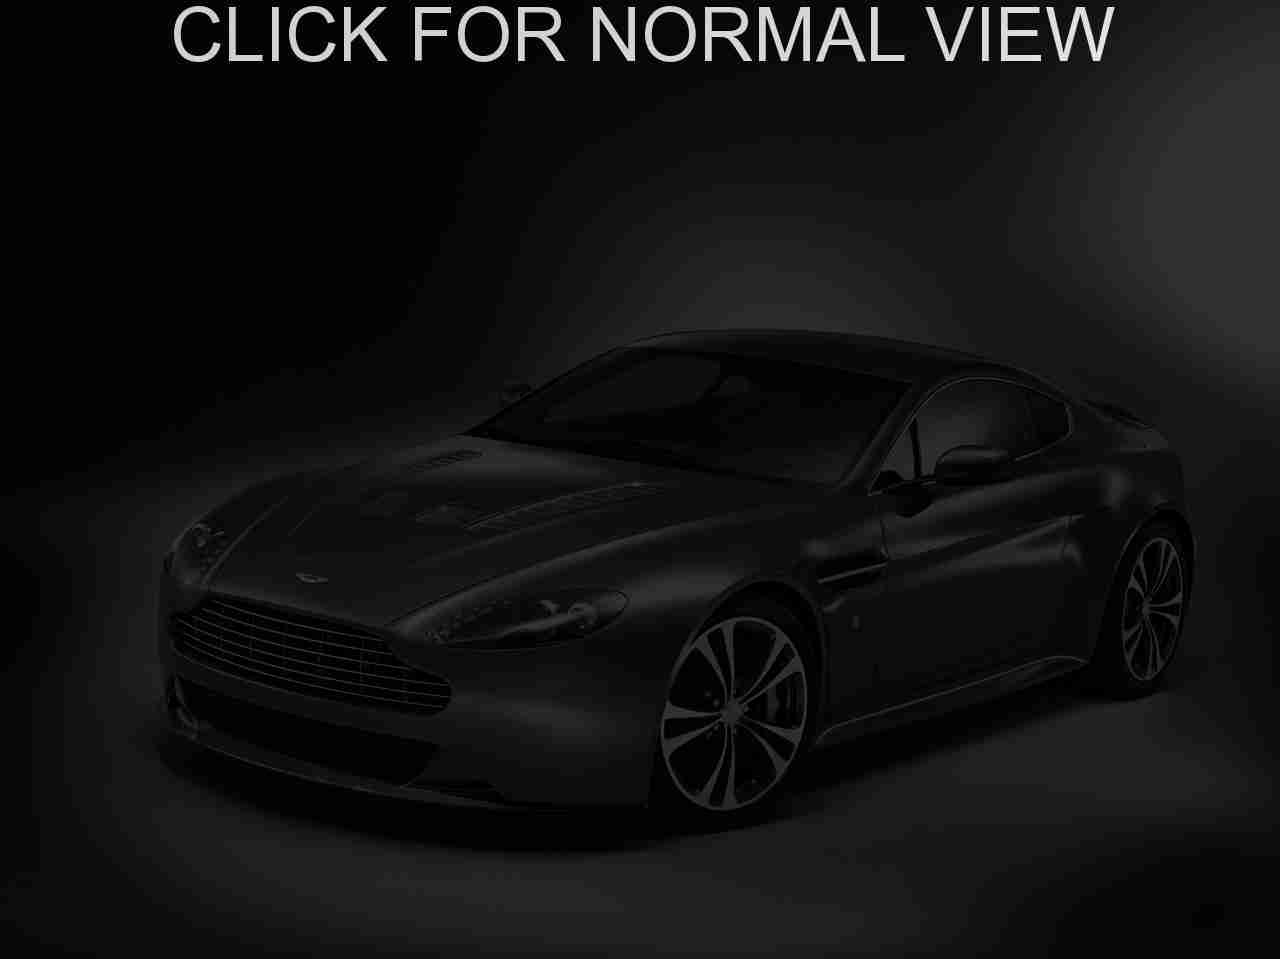 vantage - Automobile Wallpapers in, HD | Iphone | Android| Desktop 6